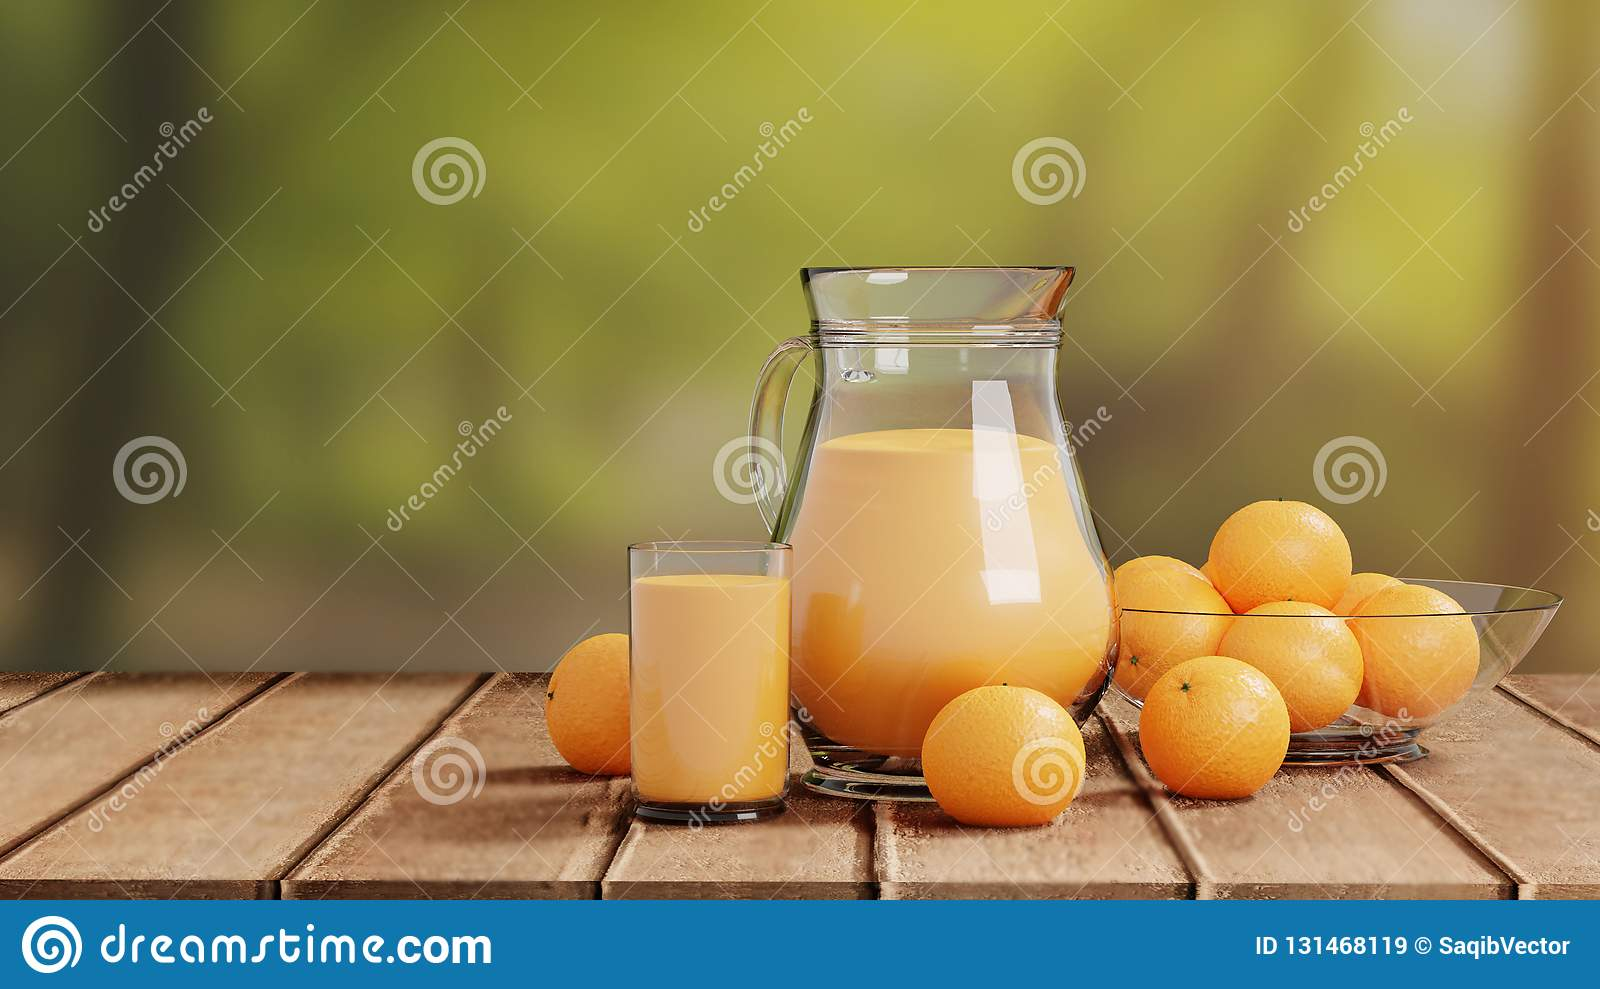 Orange Juice with Glass and Pitcher on Wooden Floor